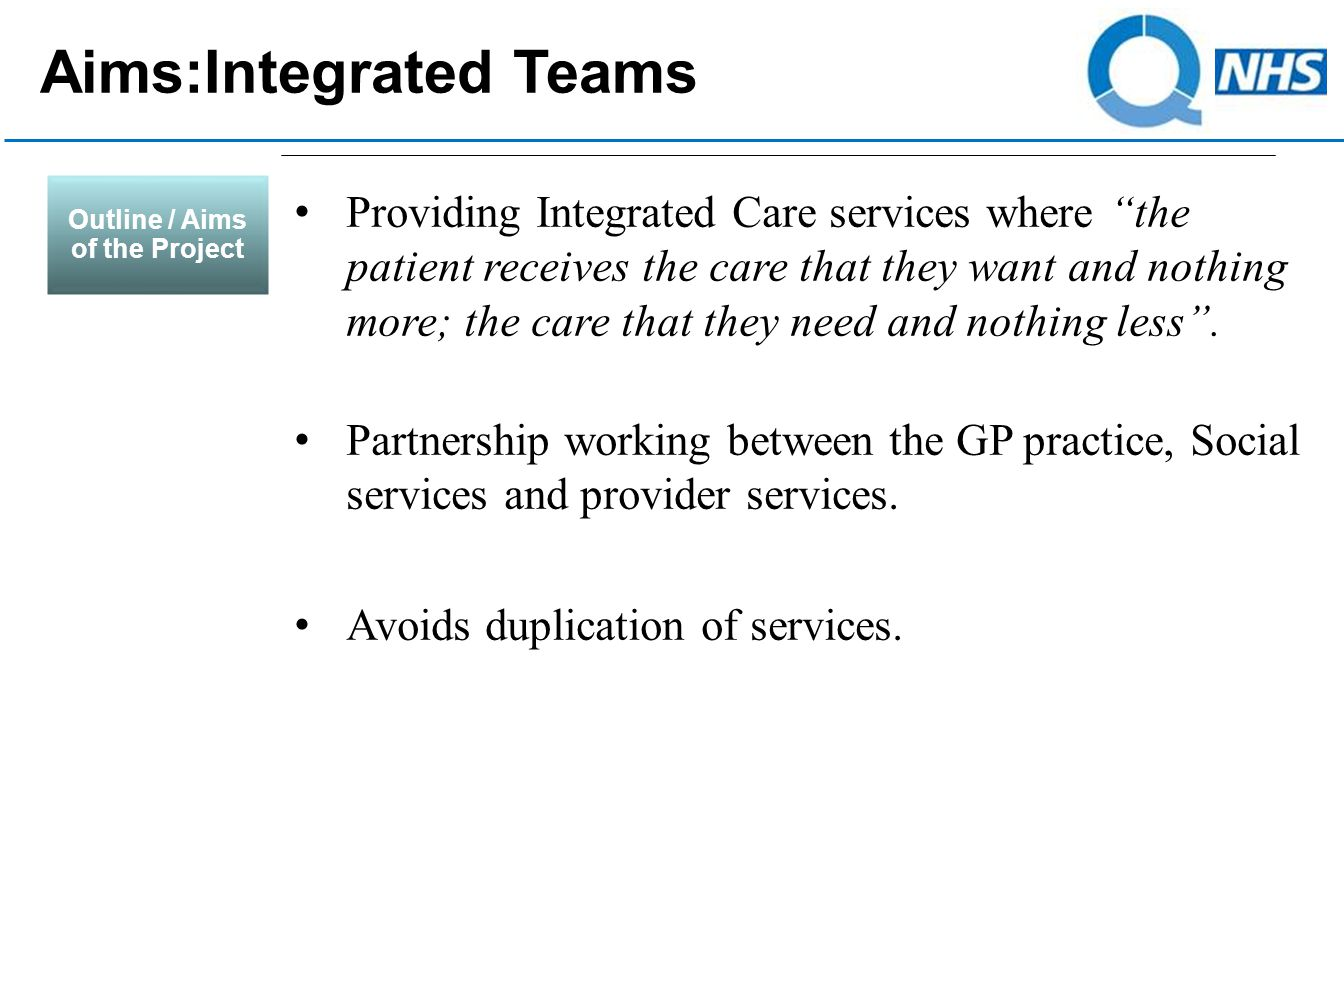 Outline / Aims of the Project Providing Integrated Care services where the patient receives the care that they want and nothing more; the care that they need and nothing less .